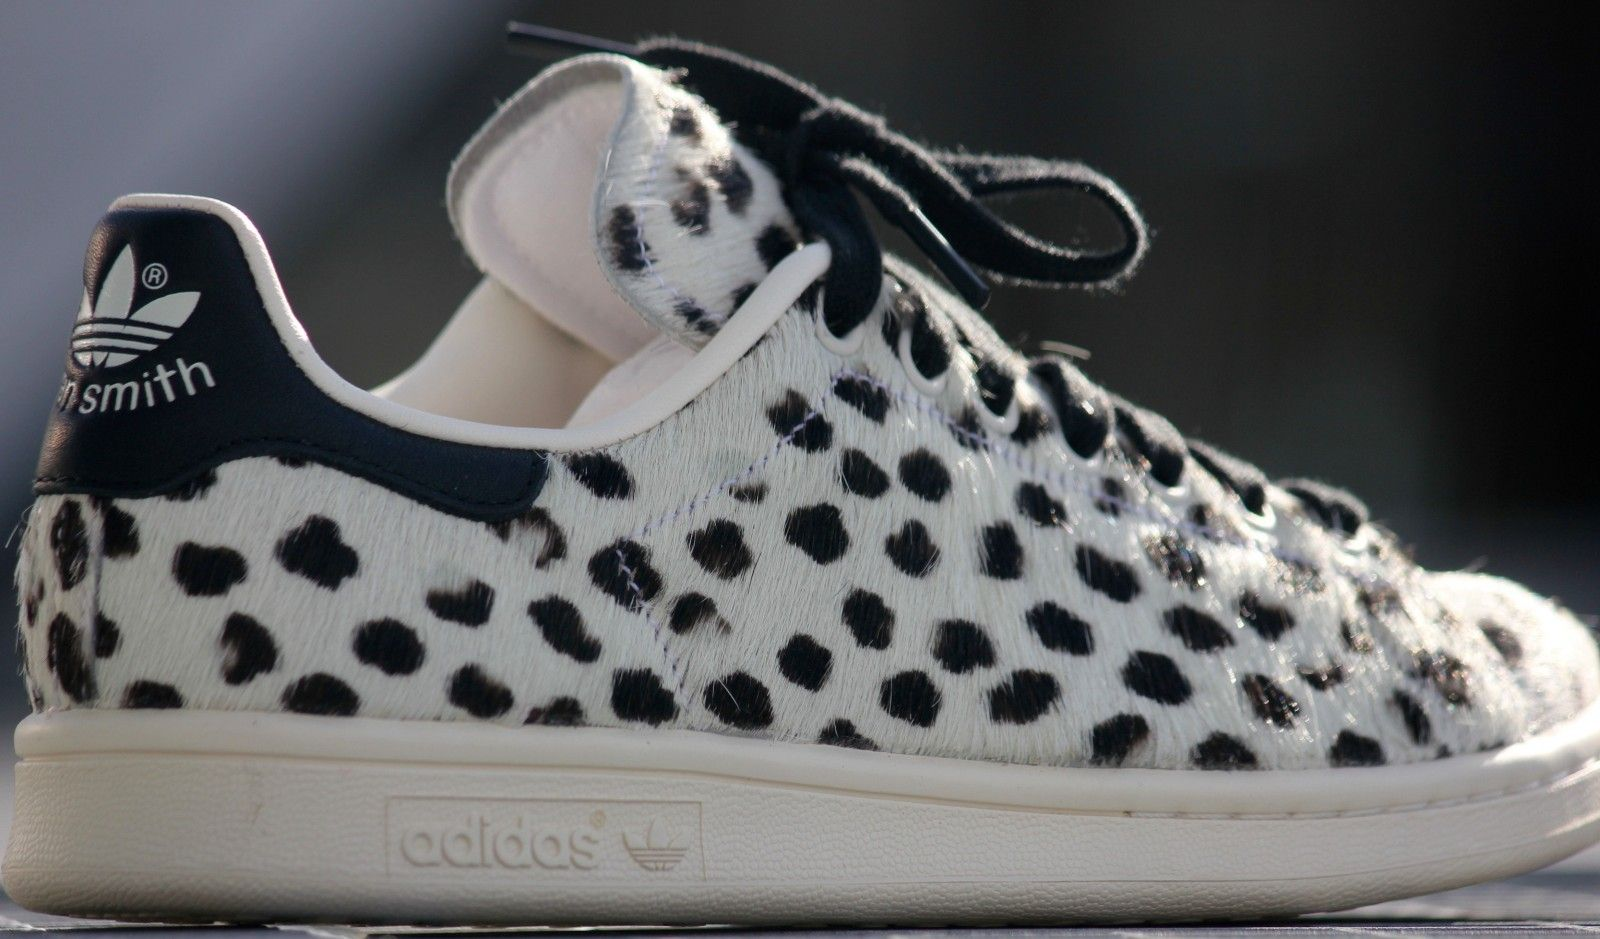 Adidas Stan Smith White Leopard Print - S75117 | Sneakers ...